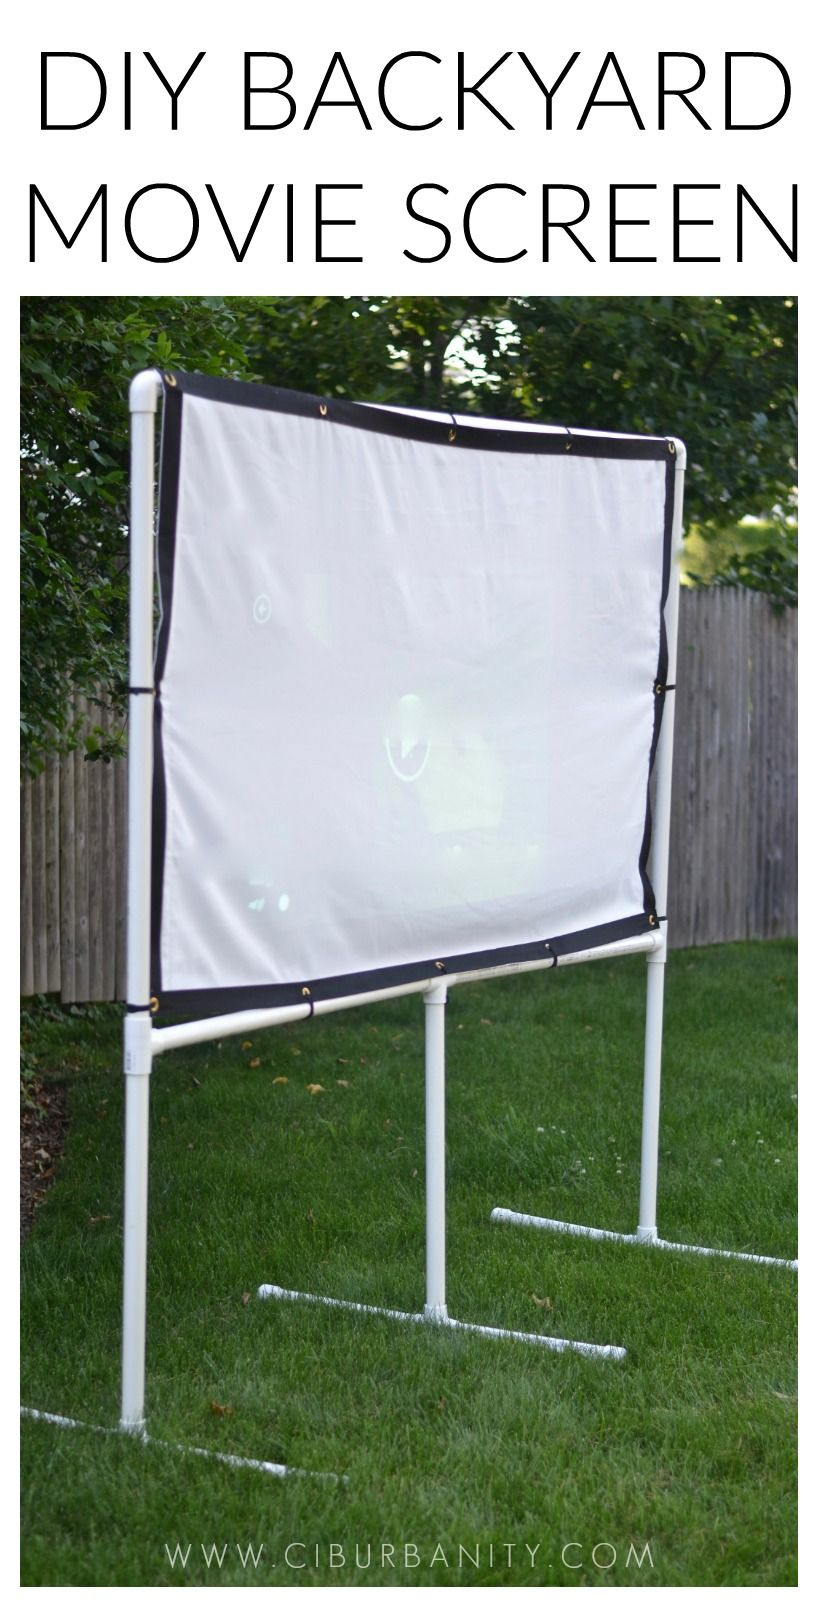 Diy Backyard Movie Screen Backyard Movie Screen Backyard Movie